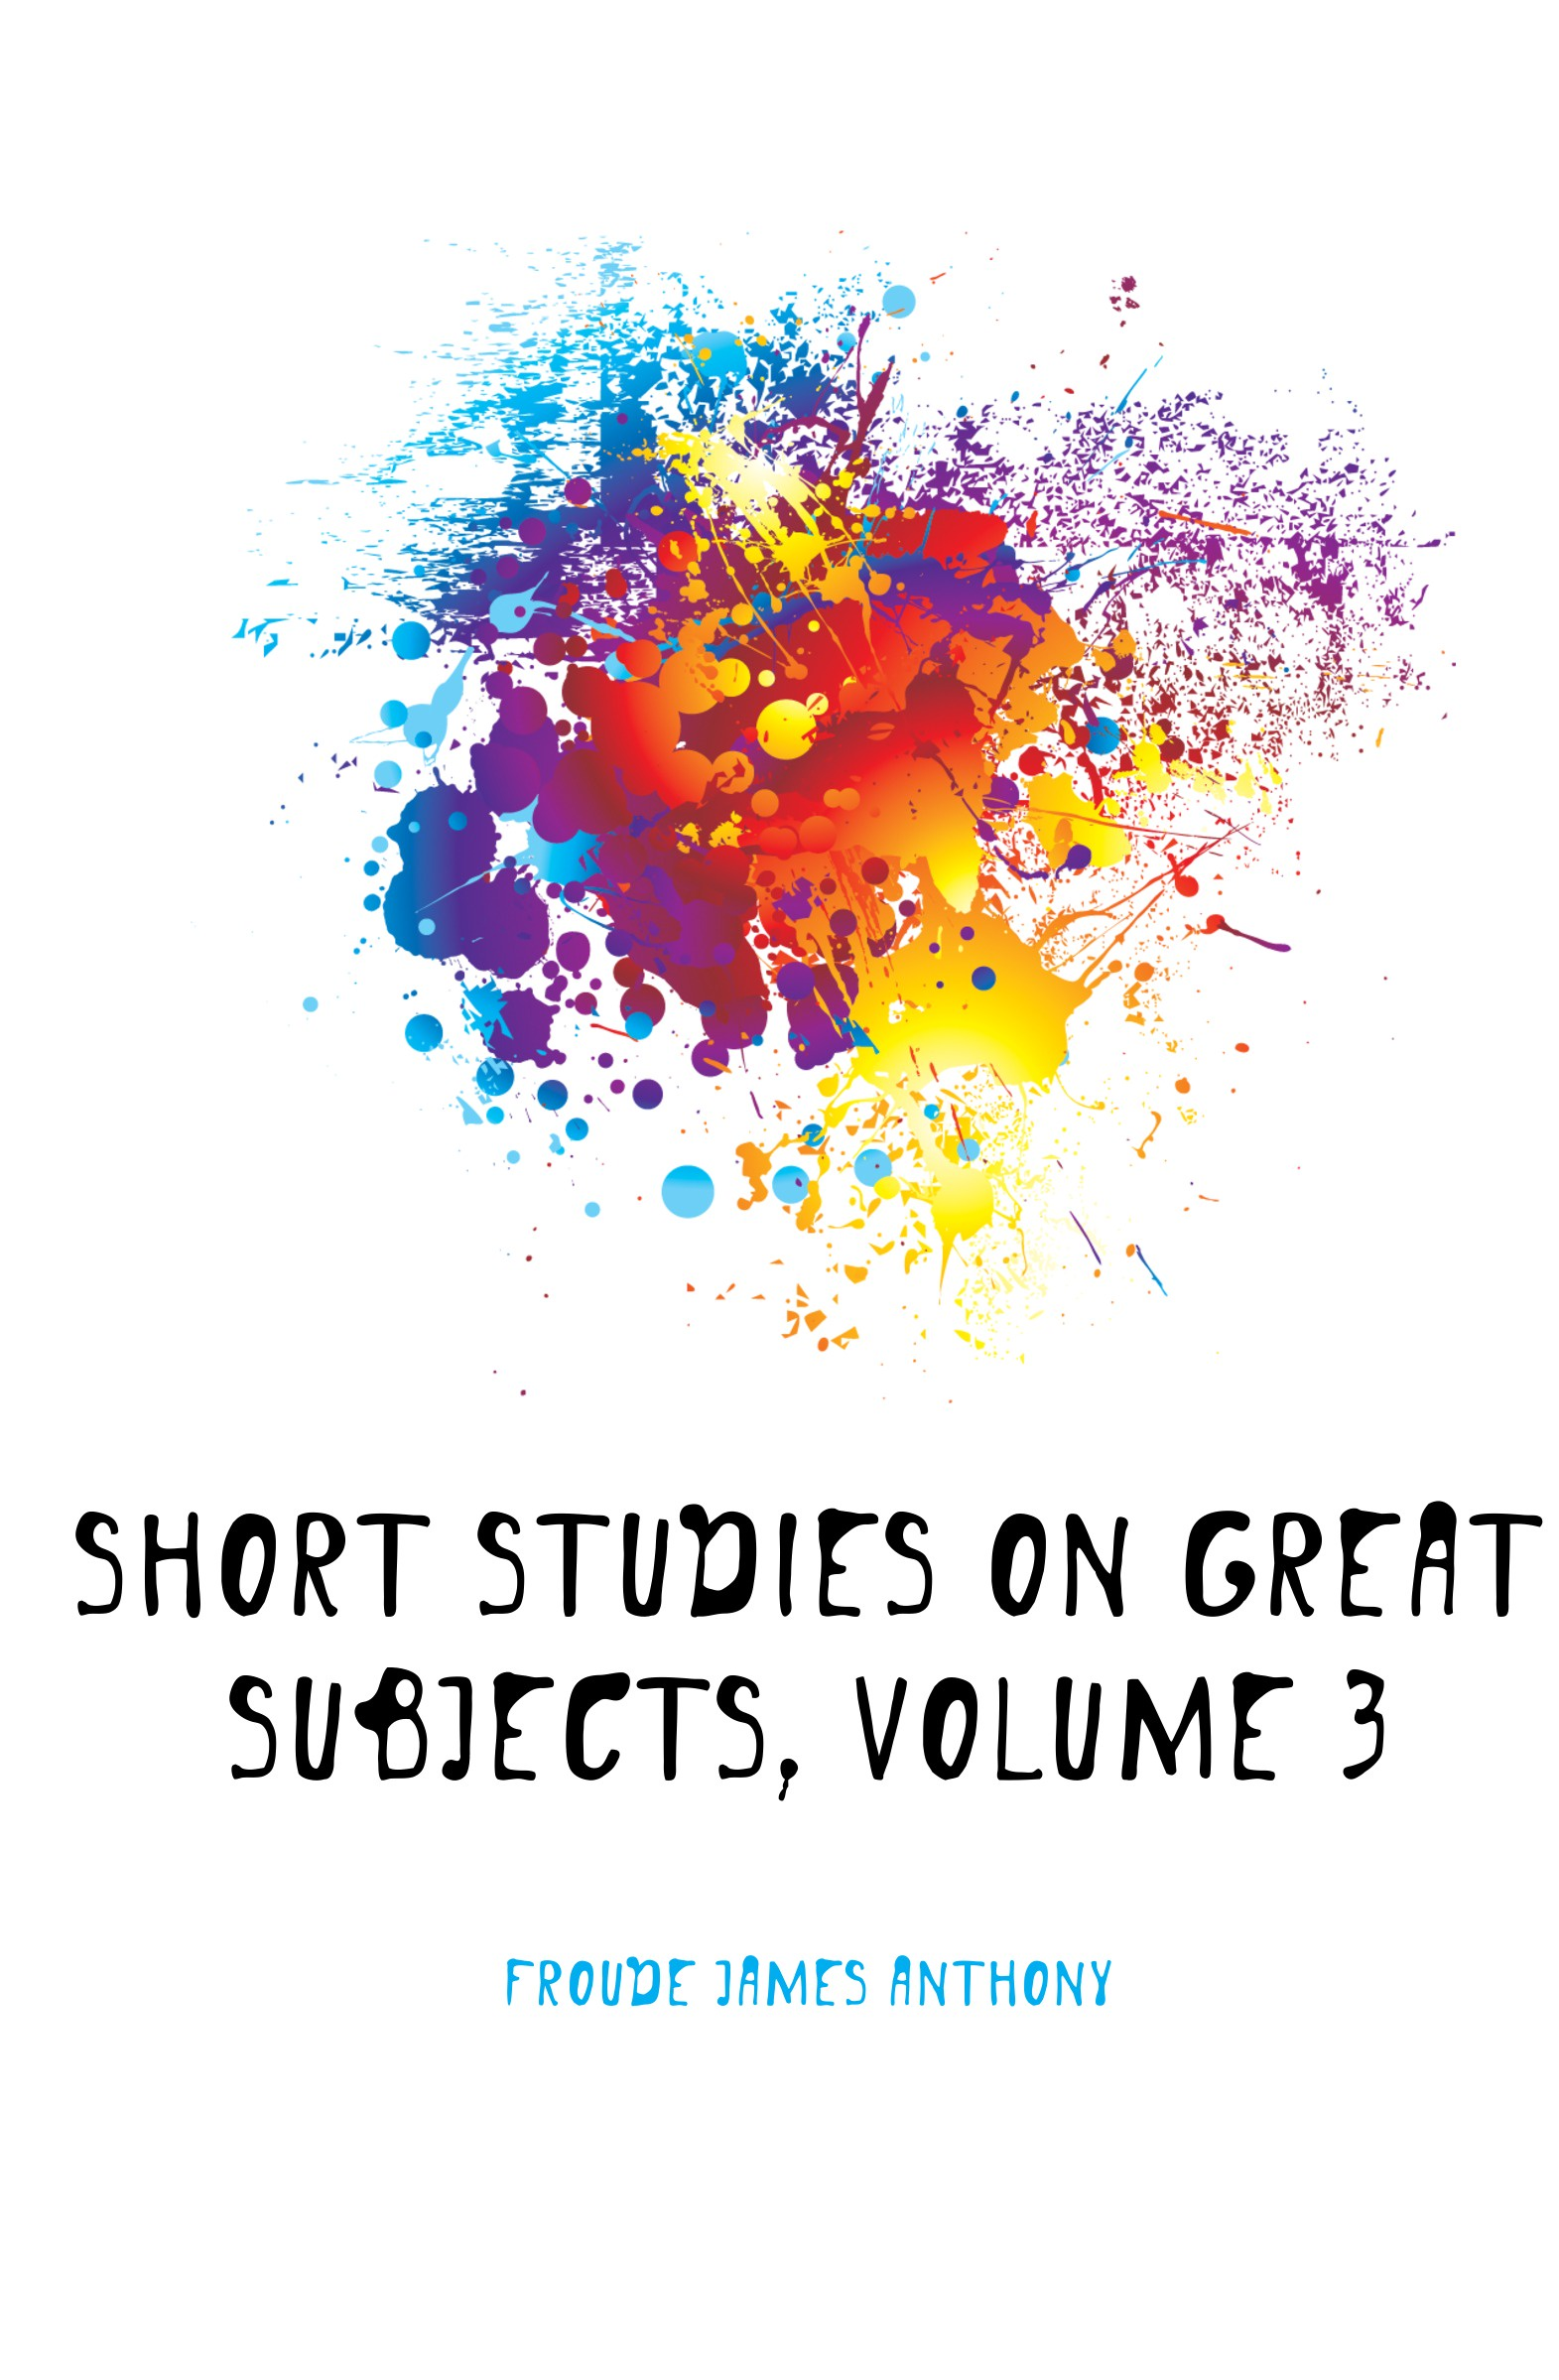 купить James Anthony Froude Short Studies On Great Subjects, Volume 3 по цене 1284 рублей